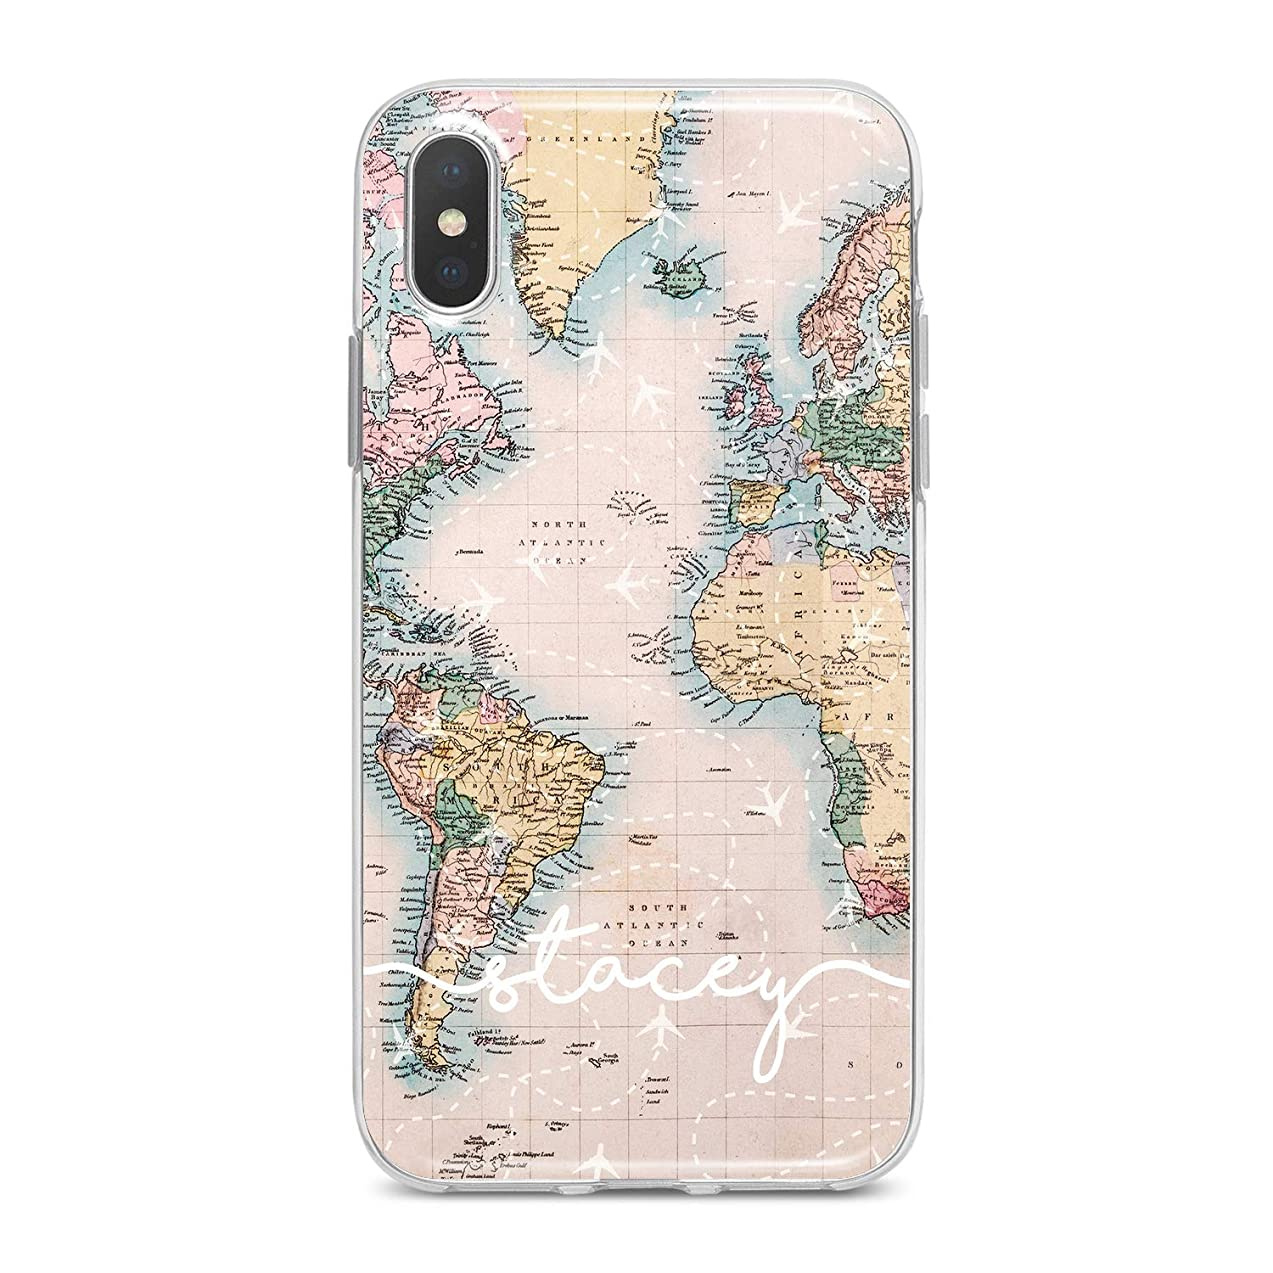 Lex Altern TPU Case for iPhone Apple Xs Max Xr 10 X 8+ 7 6s 6 SE 5s 5 Flight Map Initial Simple White Name Pattern Cute Phone Cover Silicone Print Protective Girl Drawing Clear Flexible Personalized